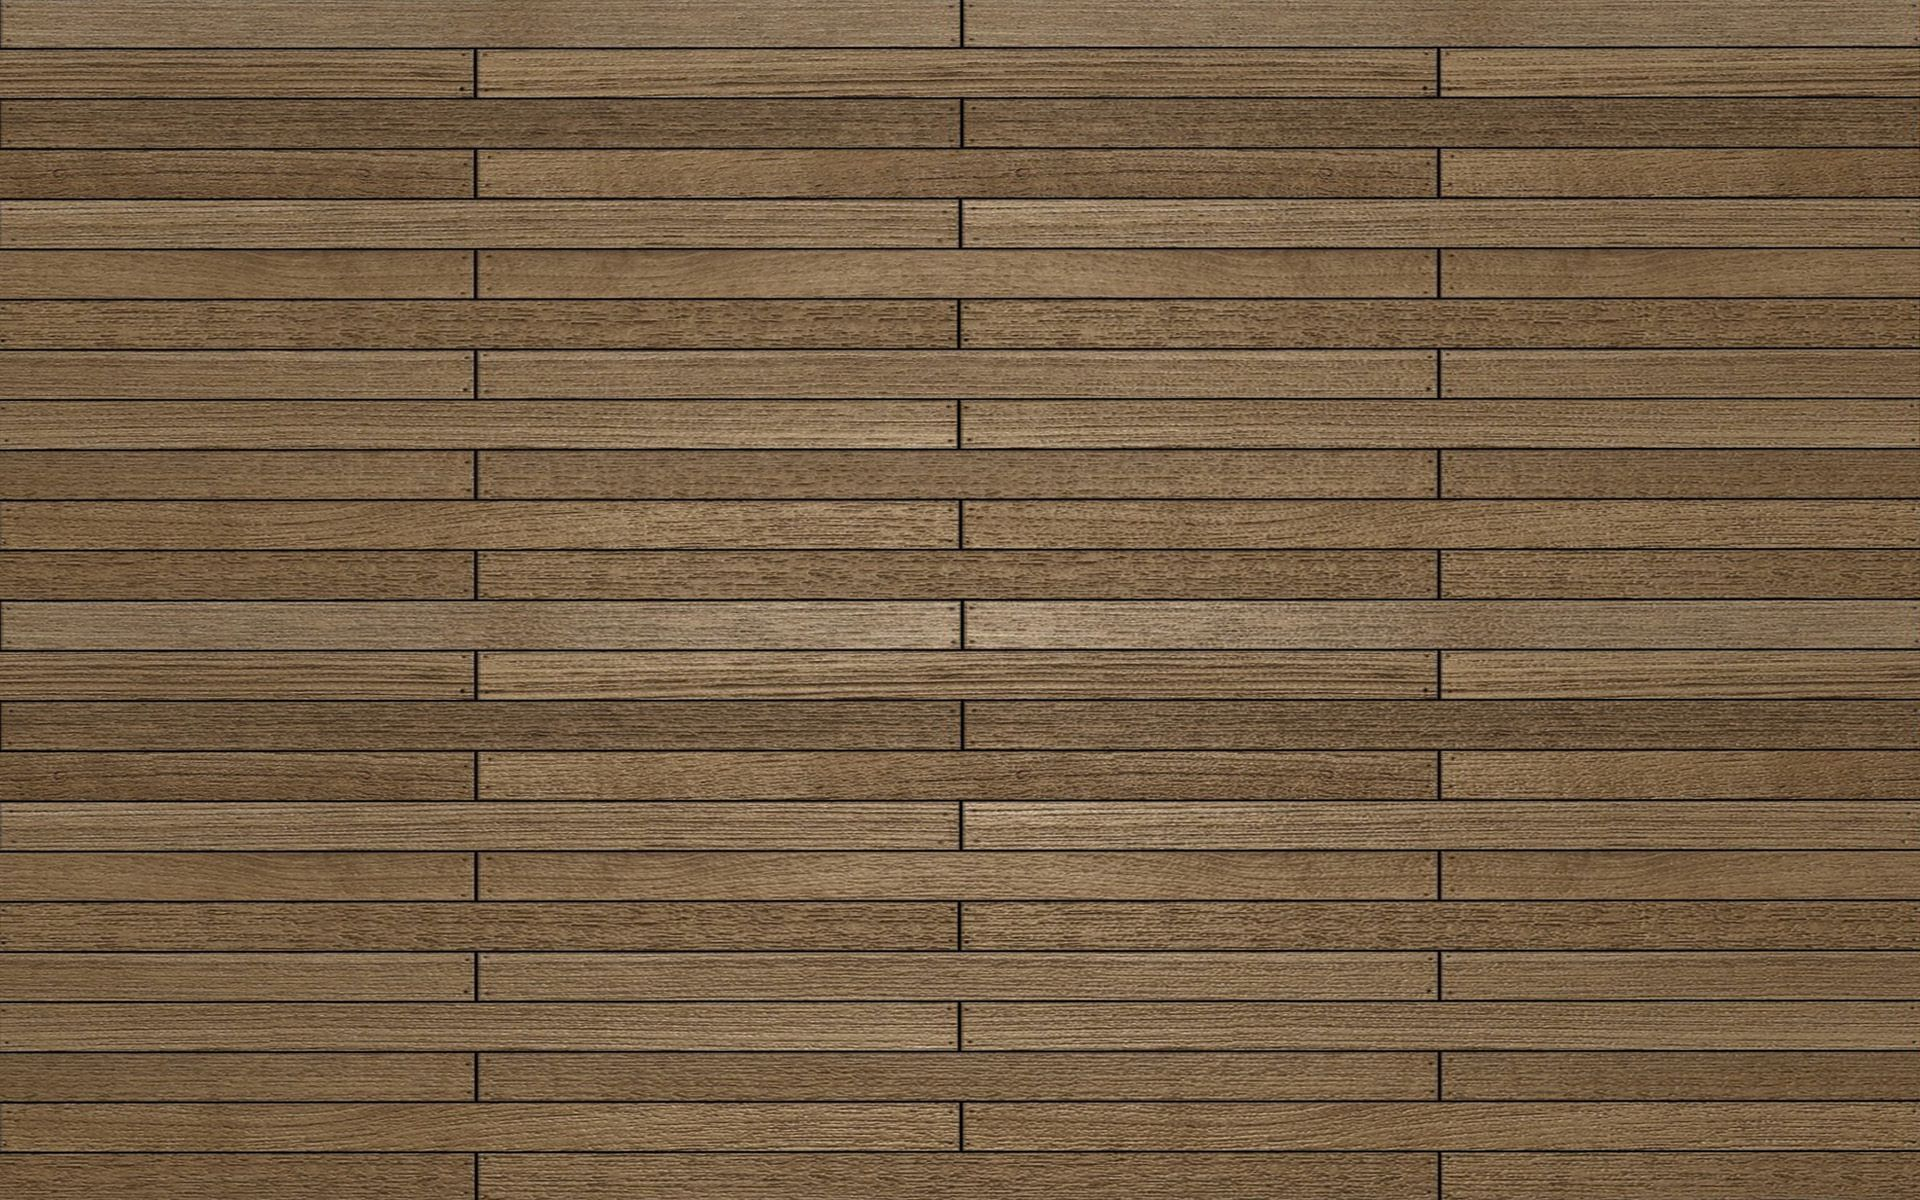 dark wood floor pattern. Wood Flooring Background Awesome 31006  MATERIAL TEXTURE AND